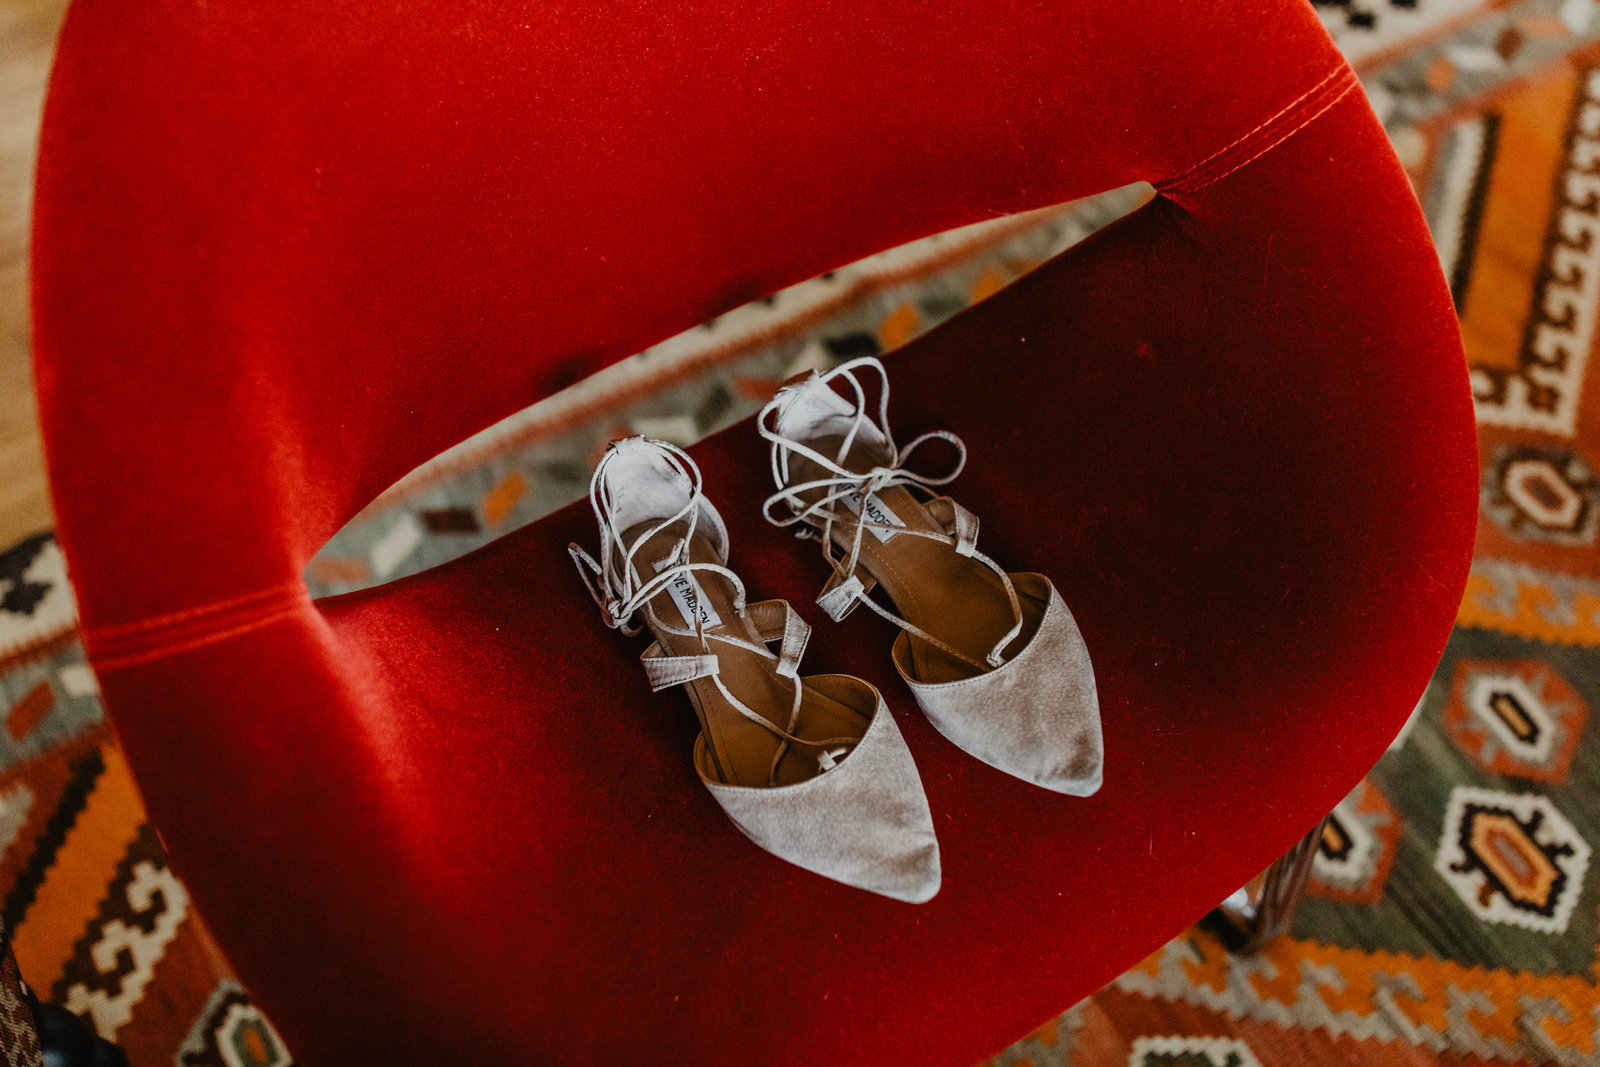 Strappy Steven Madden shoes are the perfect bridal shoe on this mid century modern chair at private Arkansas wedding